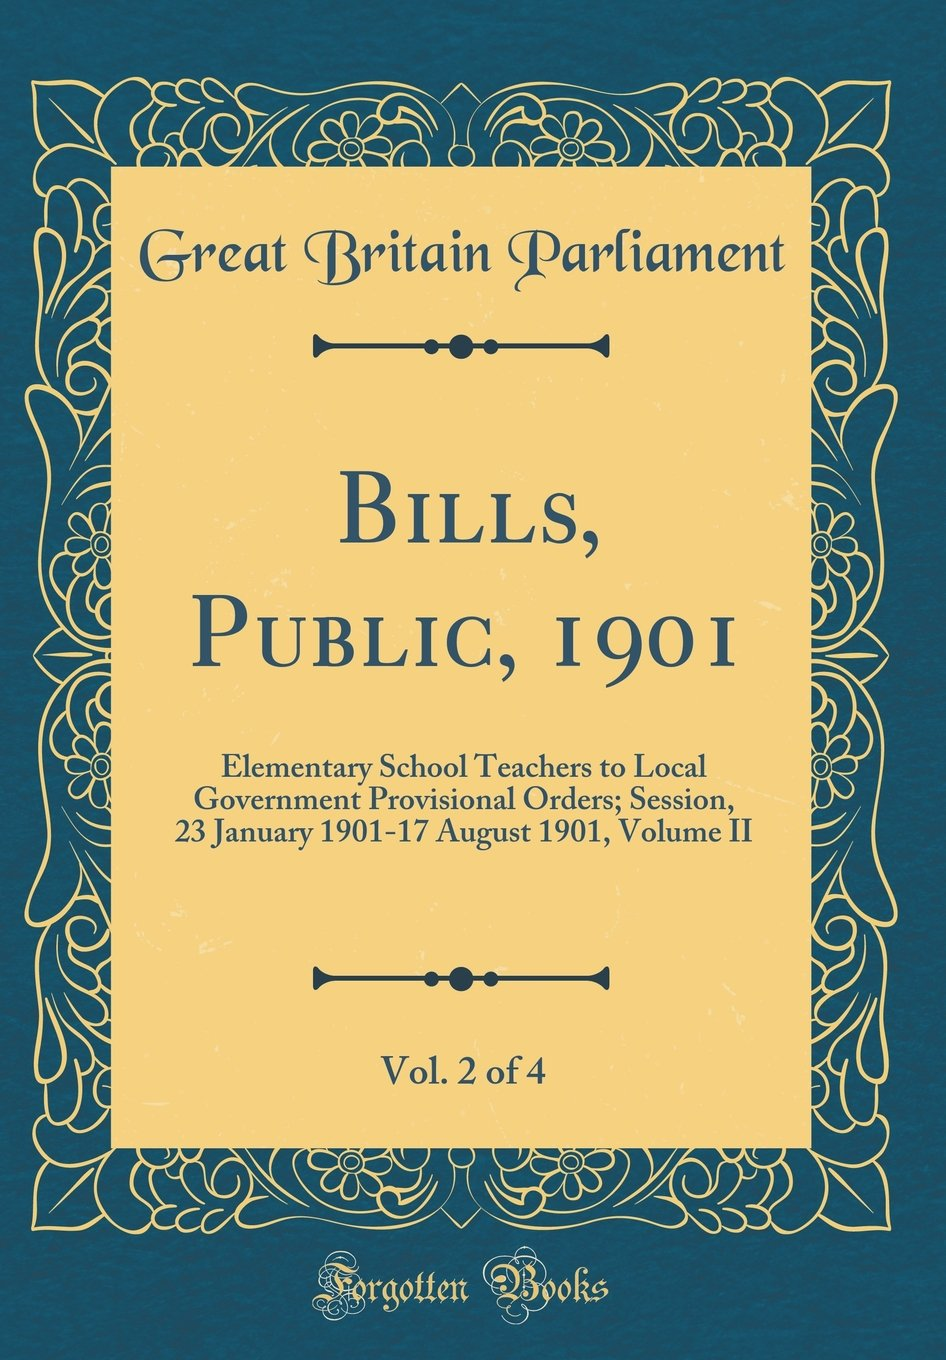 Download Bills, Public, 1901, Vol. 2 of 4: Elementary School Teachers to Local Government Provisional Orders; Session, 23 January 1901-17 August 1901, Volume II (Classic Reprint) pdf